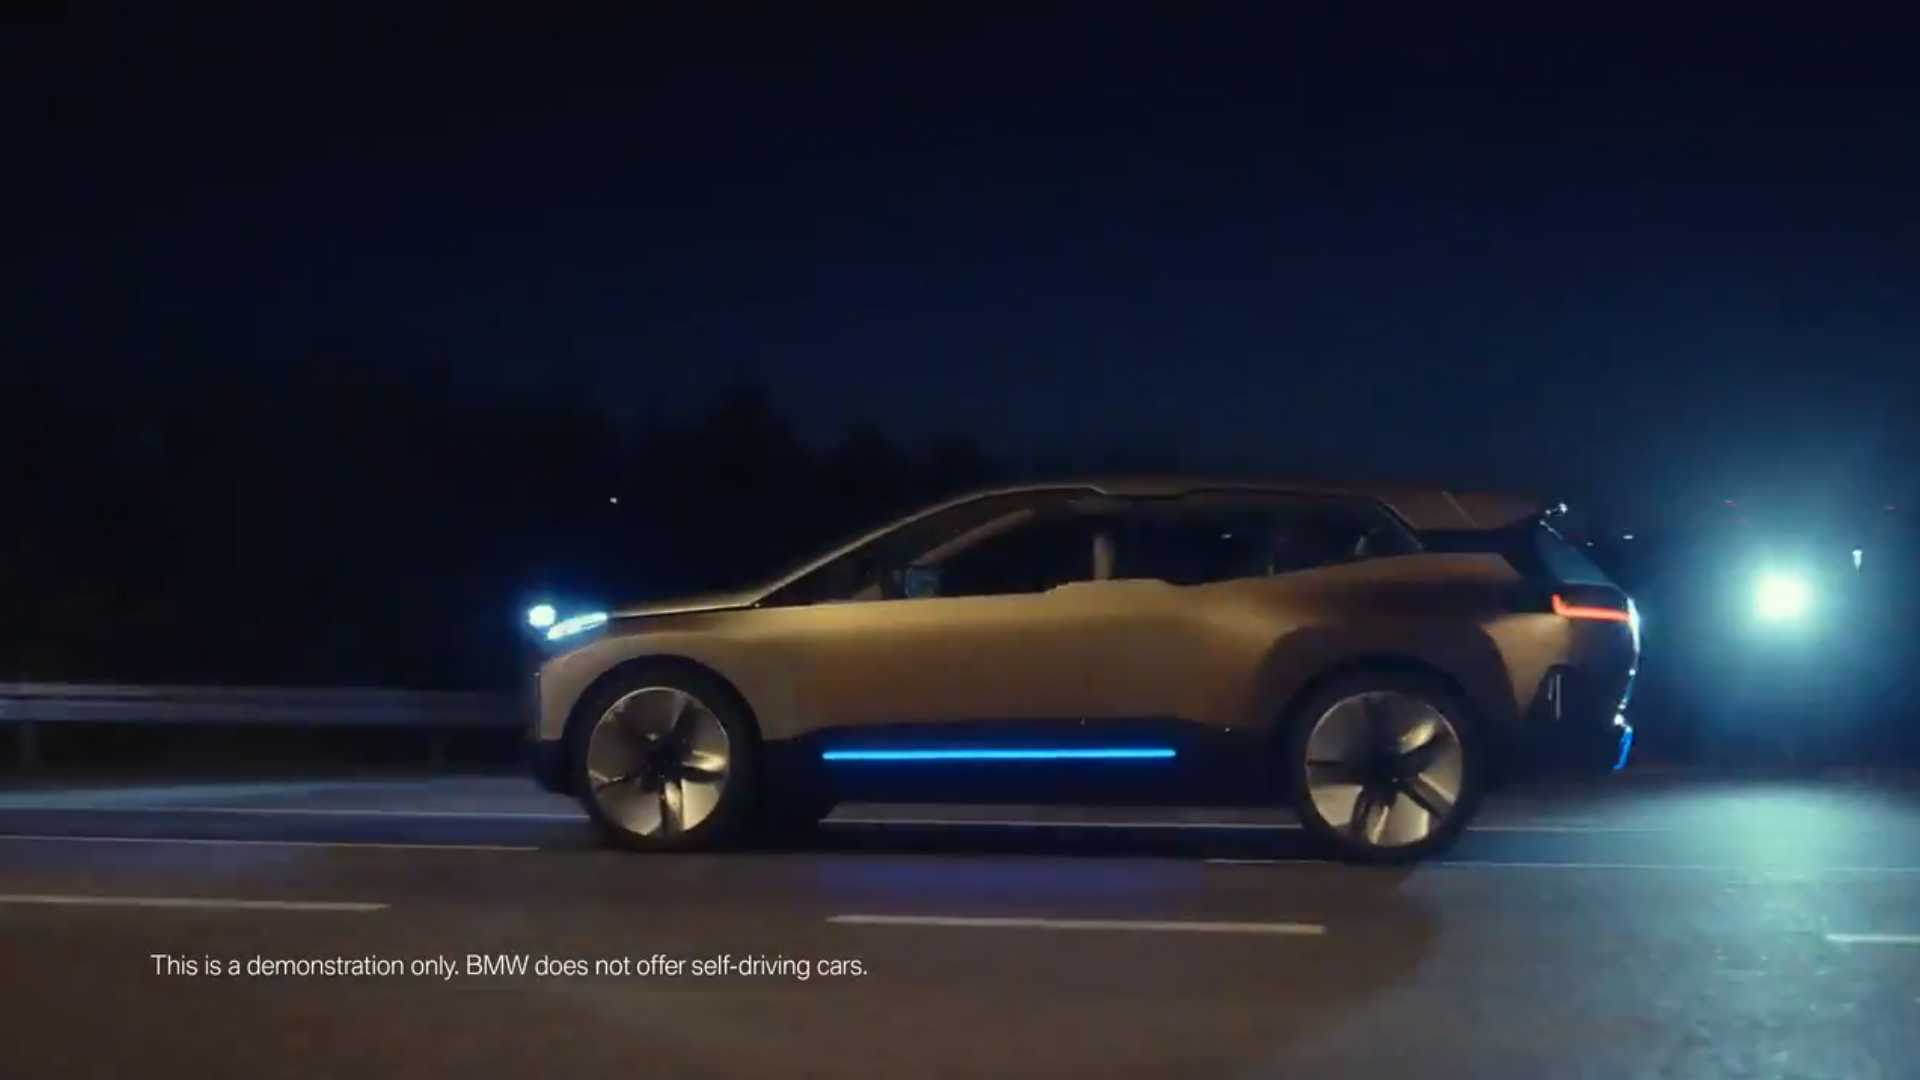 Racy BMW Video Suggests Sex Is 'New Moments Of Joy' In Autonomous Car